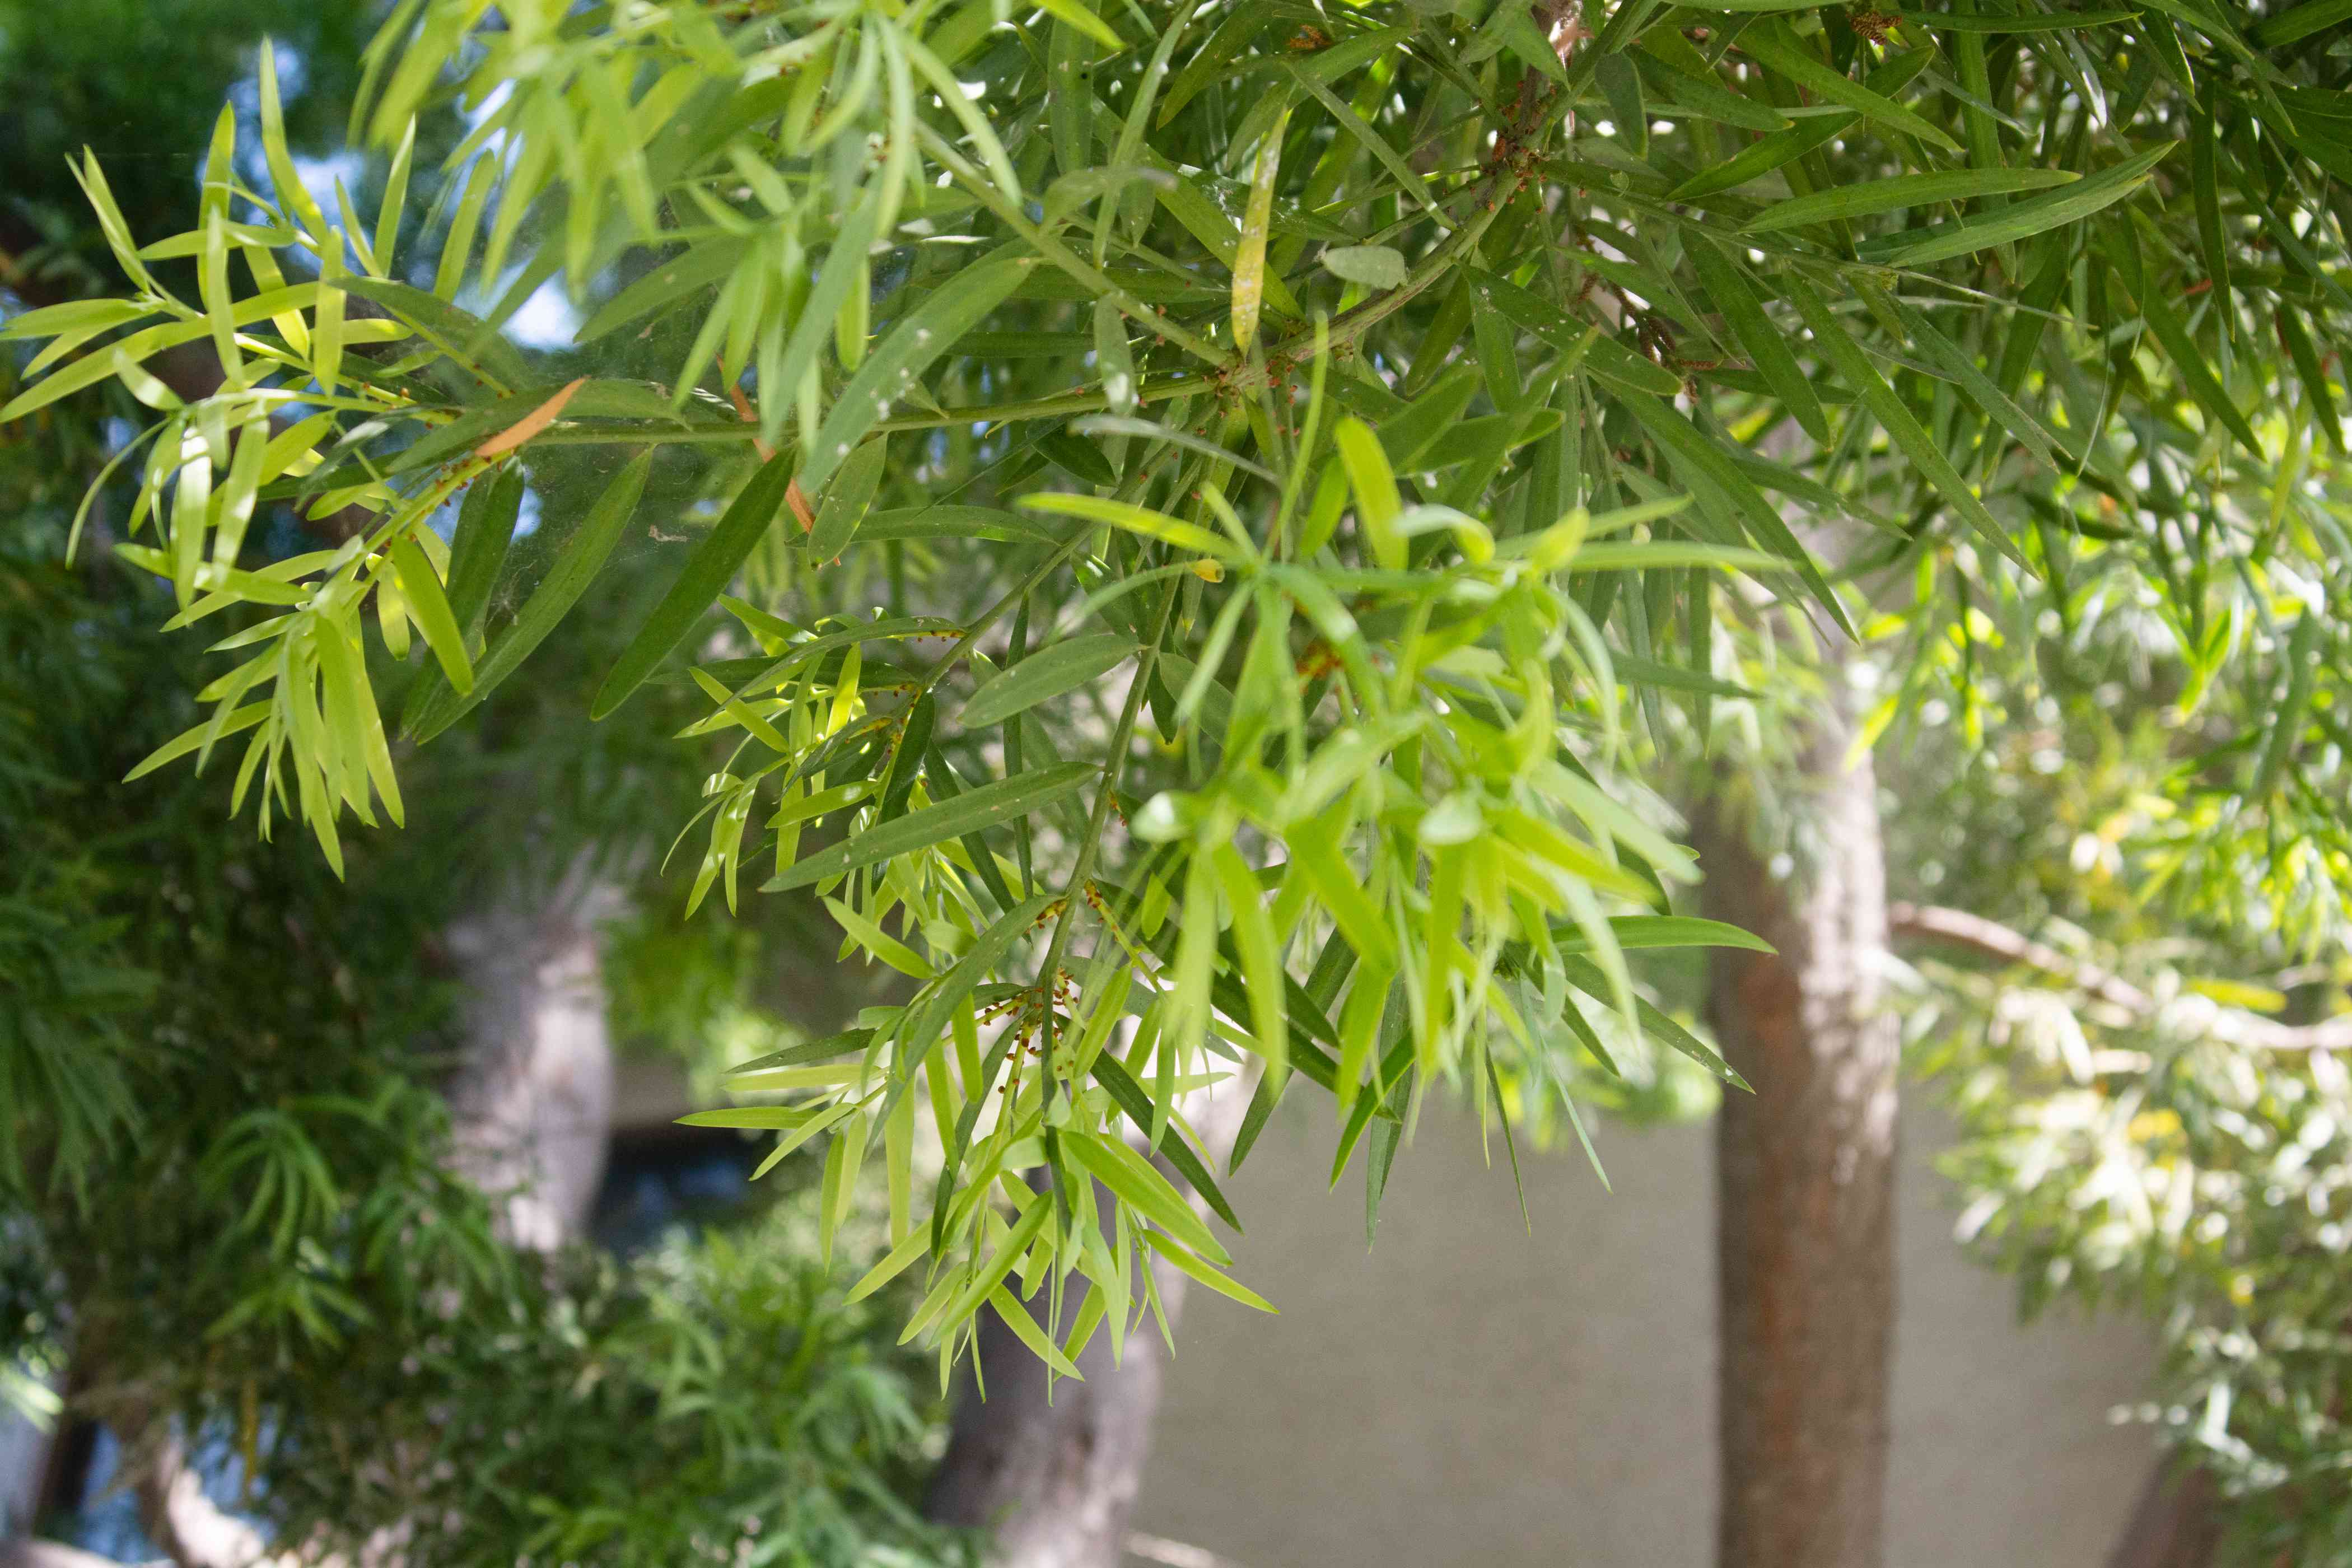 African fern pine tree branch with fern-like leaves closeup